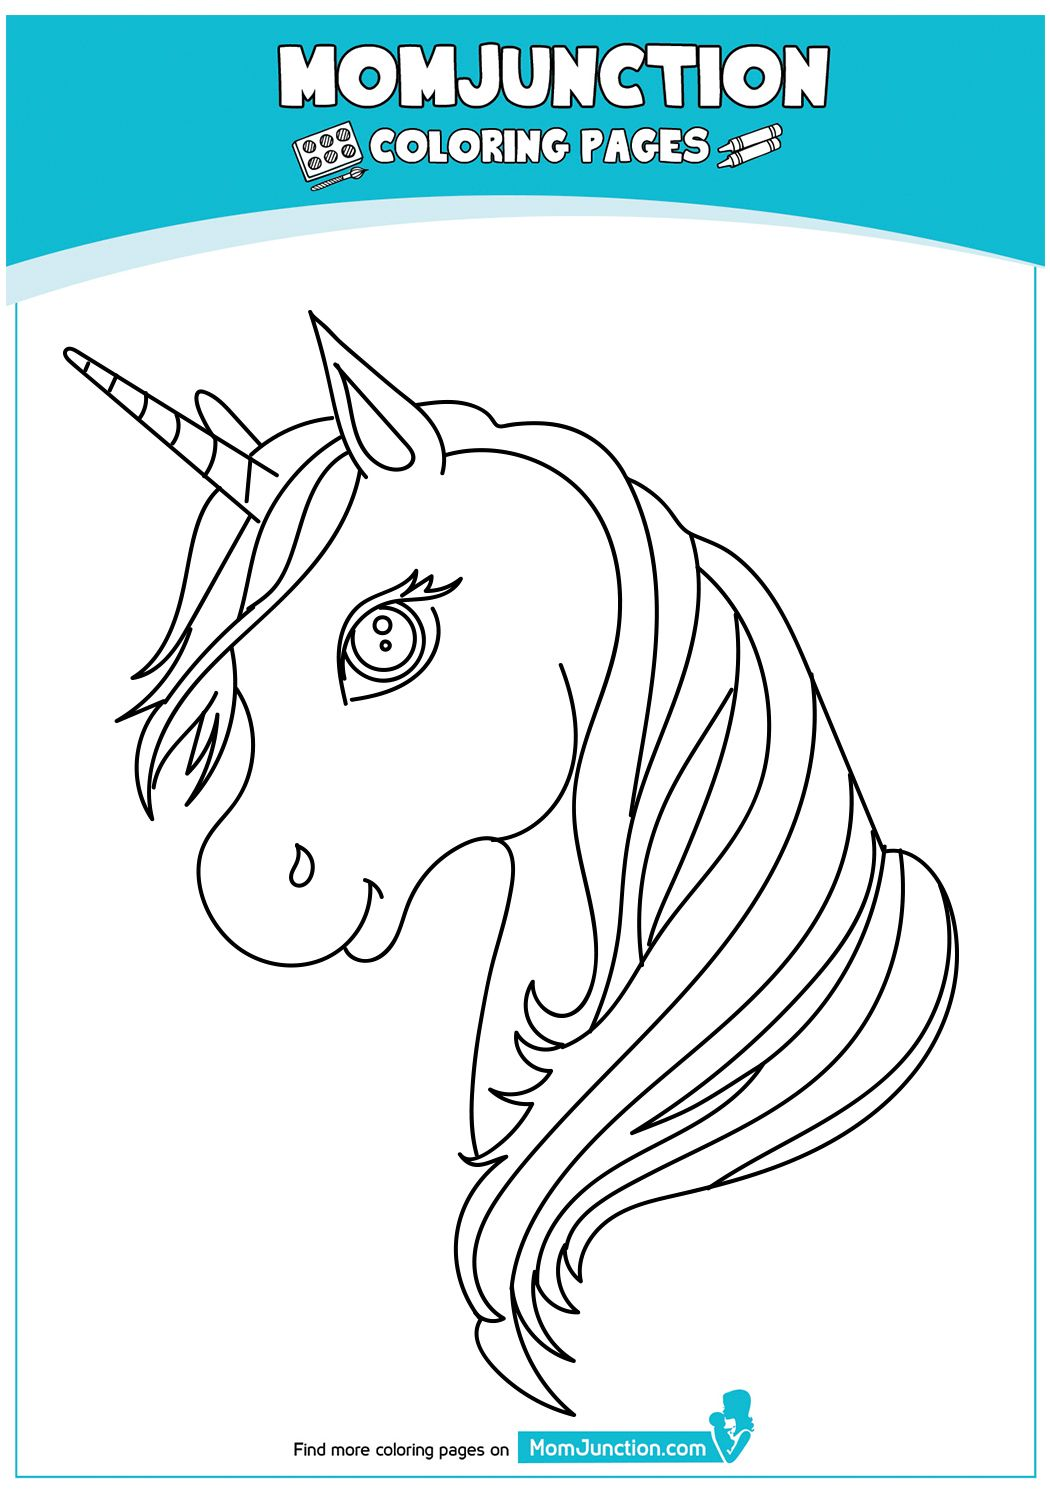 Print Coloring Image Momjunction Unicorn Coloring Pages Coloring Pages Coloring Books